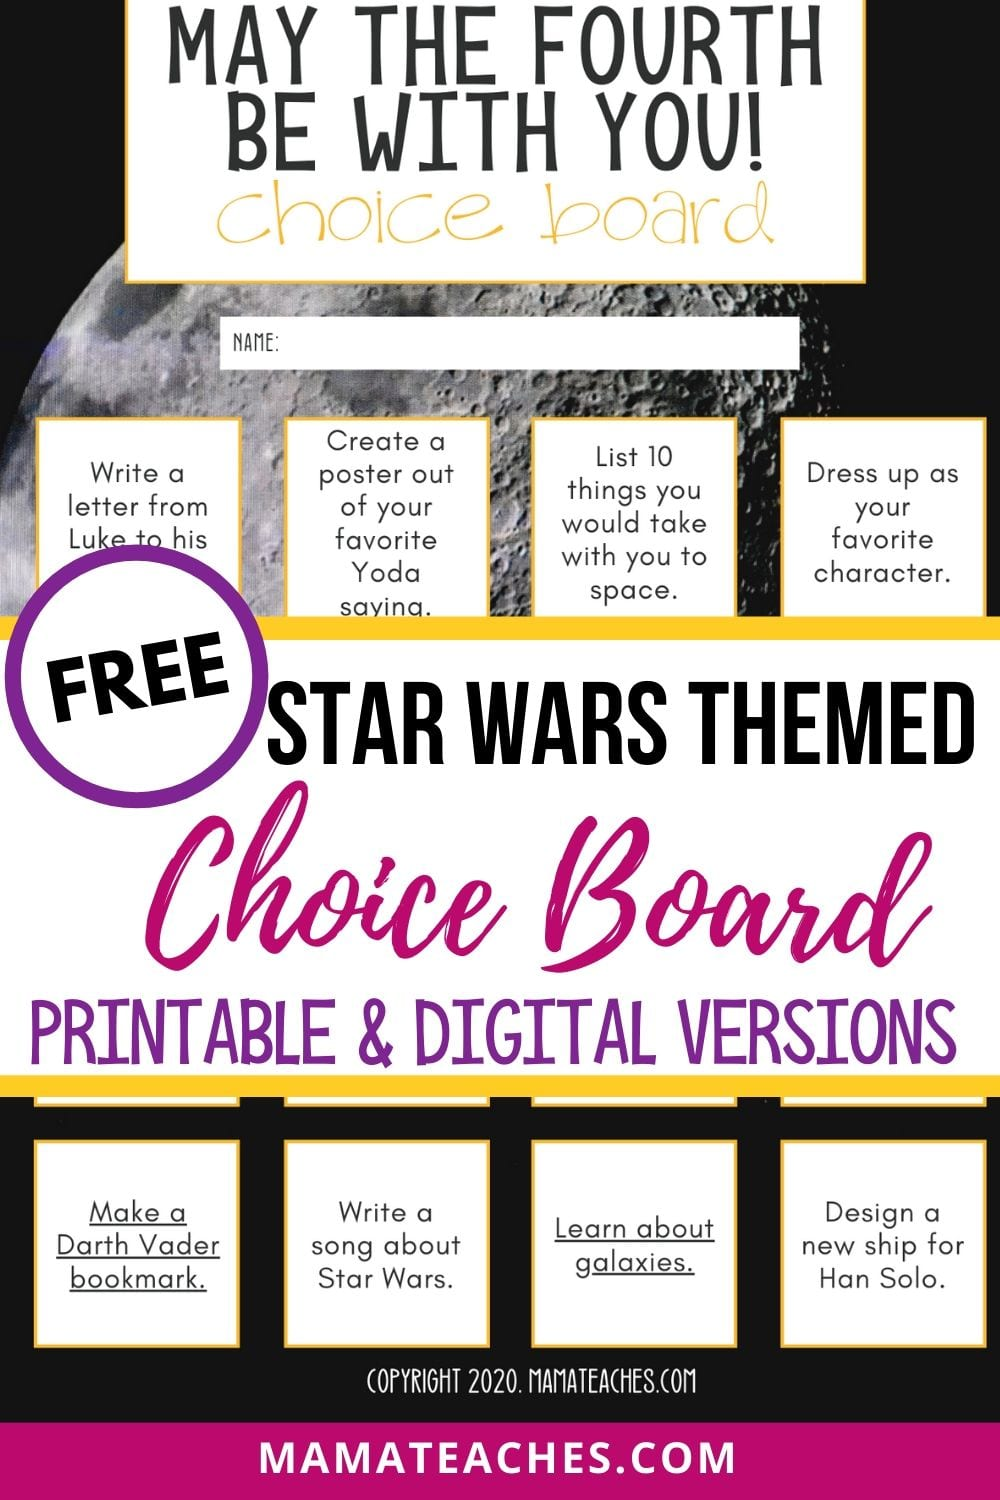 Free Star Wars Themed Choice Board - Printable and Digital Versions for Distance Learning - May the 4th Be With You! MamaTeaches.com